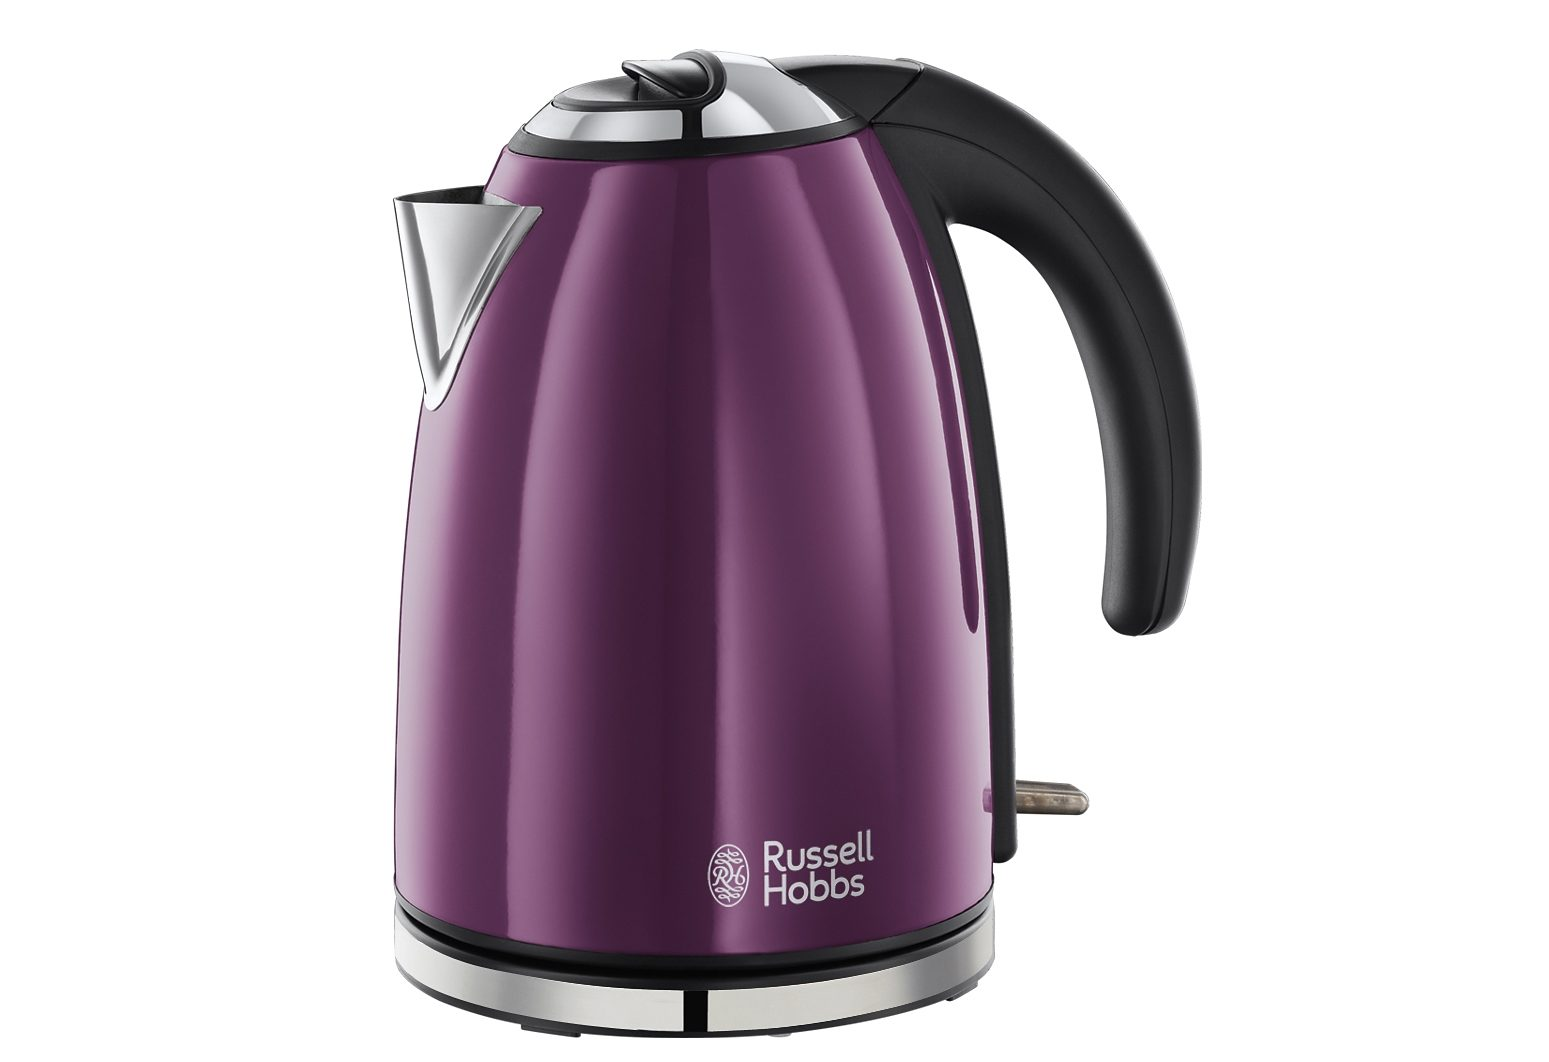 Russell Hobbs Wasserkocher »Colours Purple Passion« 18945-70